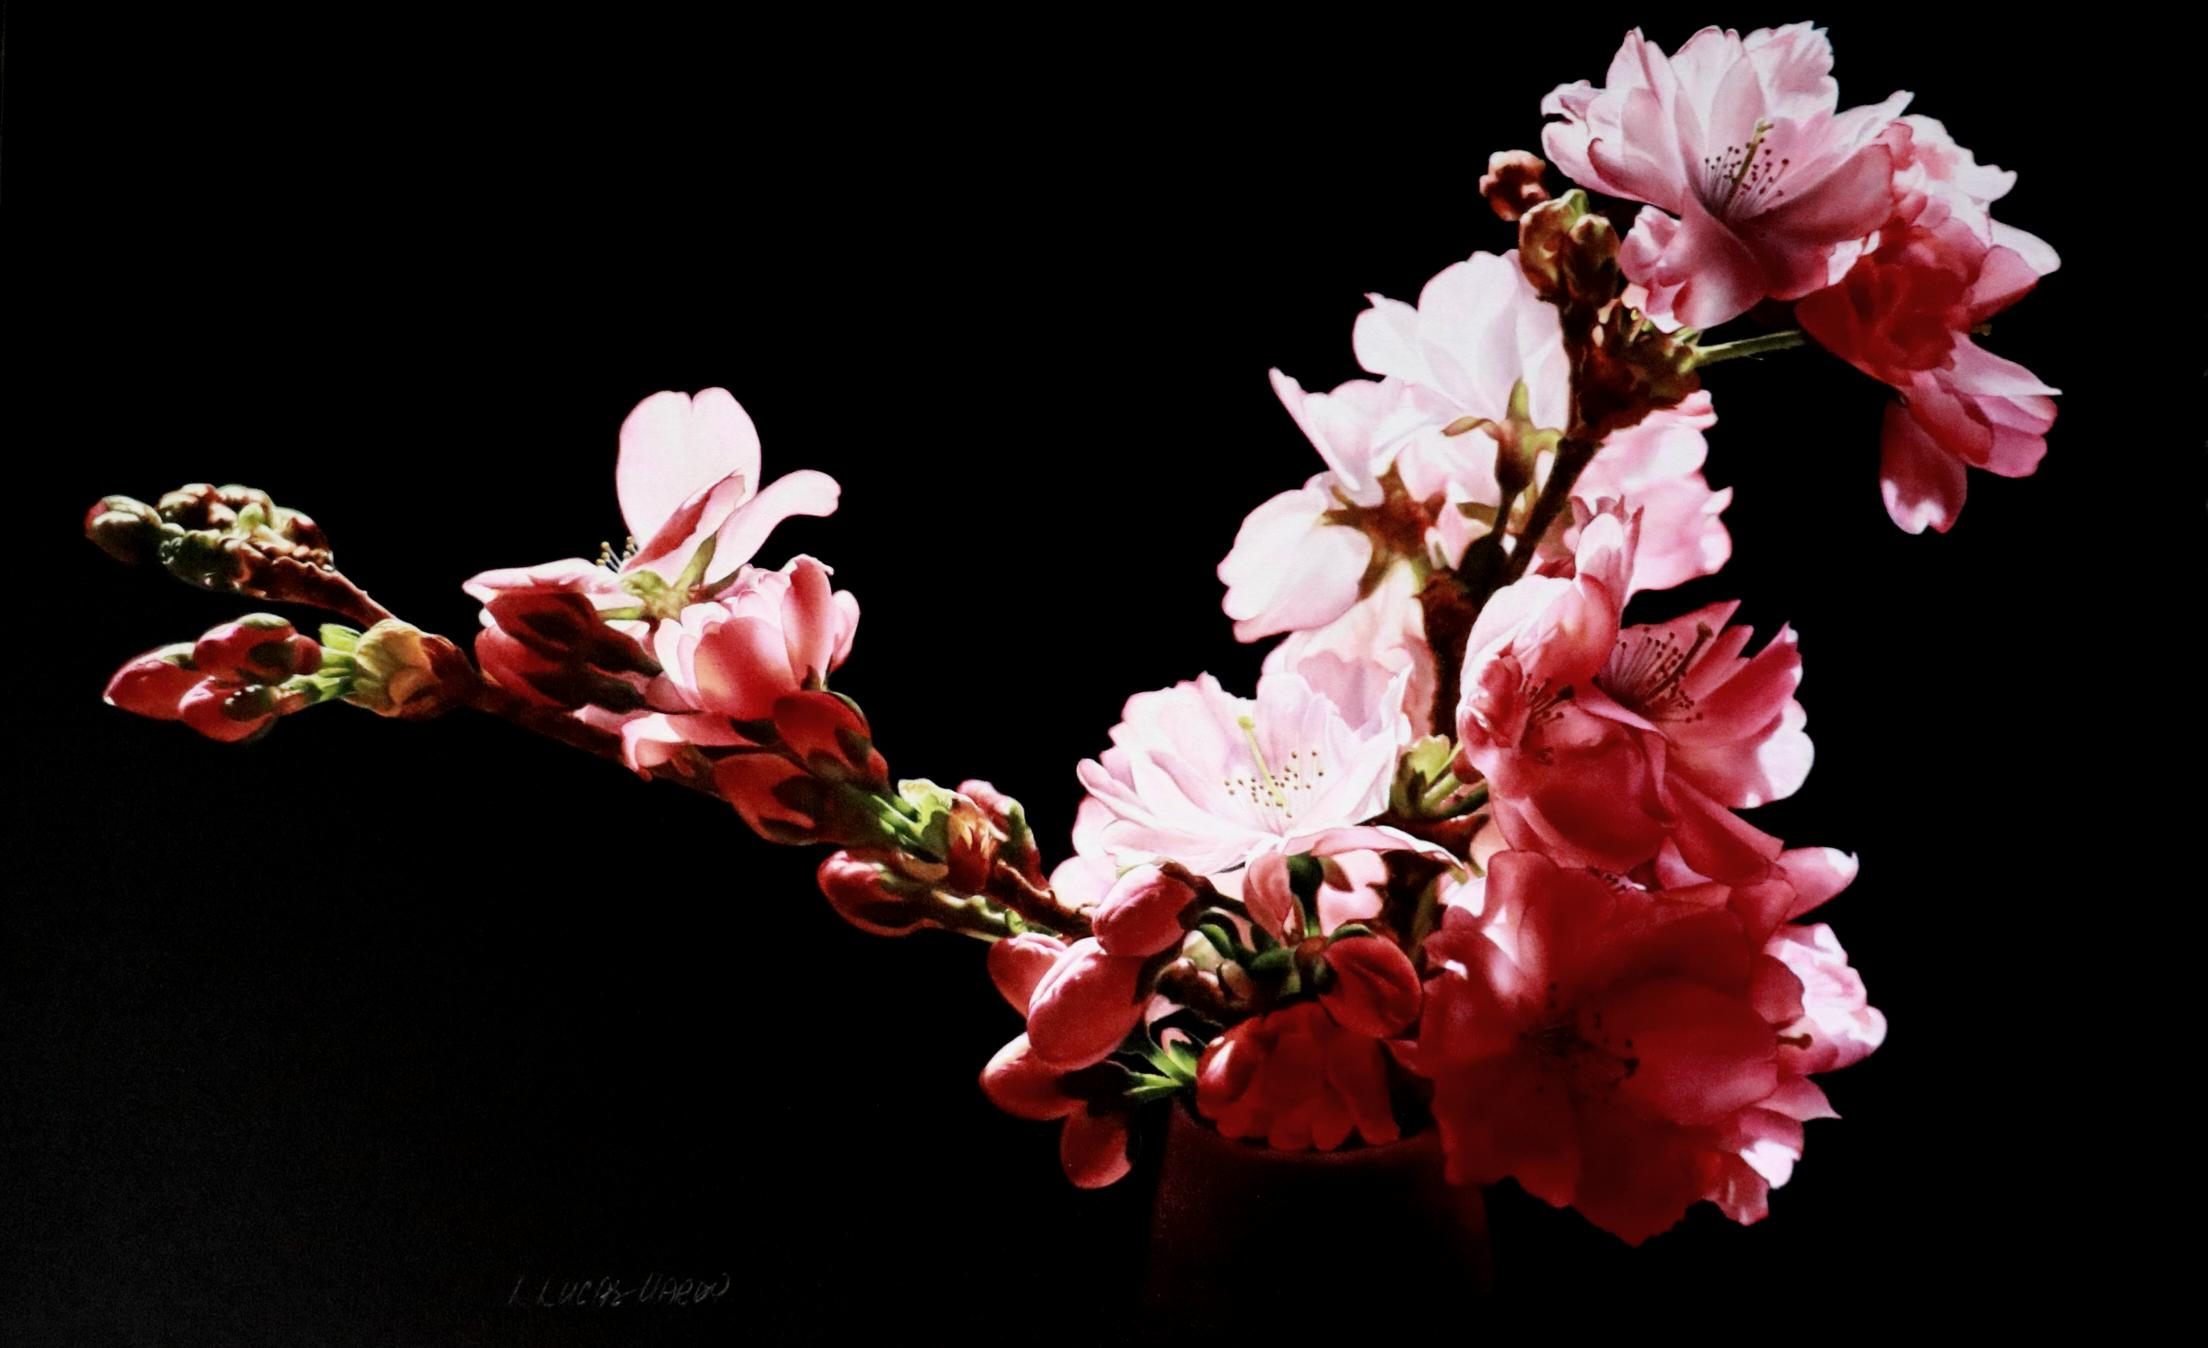 A Sweet Fragrance Filling the Air